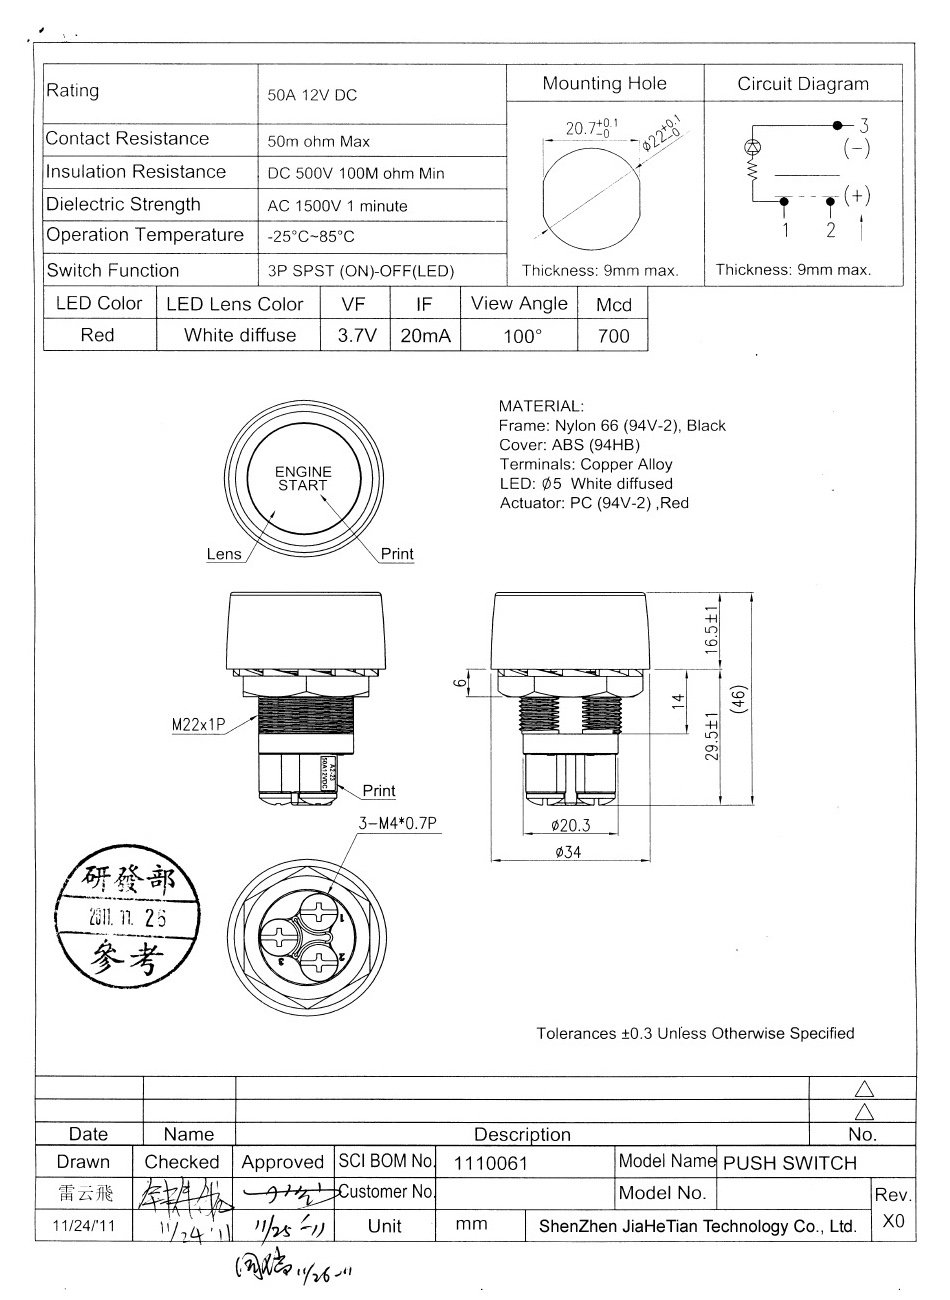 Universal Ignition Switch Wiring Diagram Automotive on ignition coil wiring diagram, marine ignition switch wiring diagram, ford ignition switch wiring diagram, motorcycle ignition switch wiring diagram,